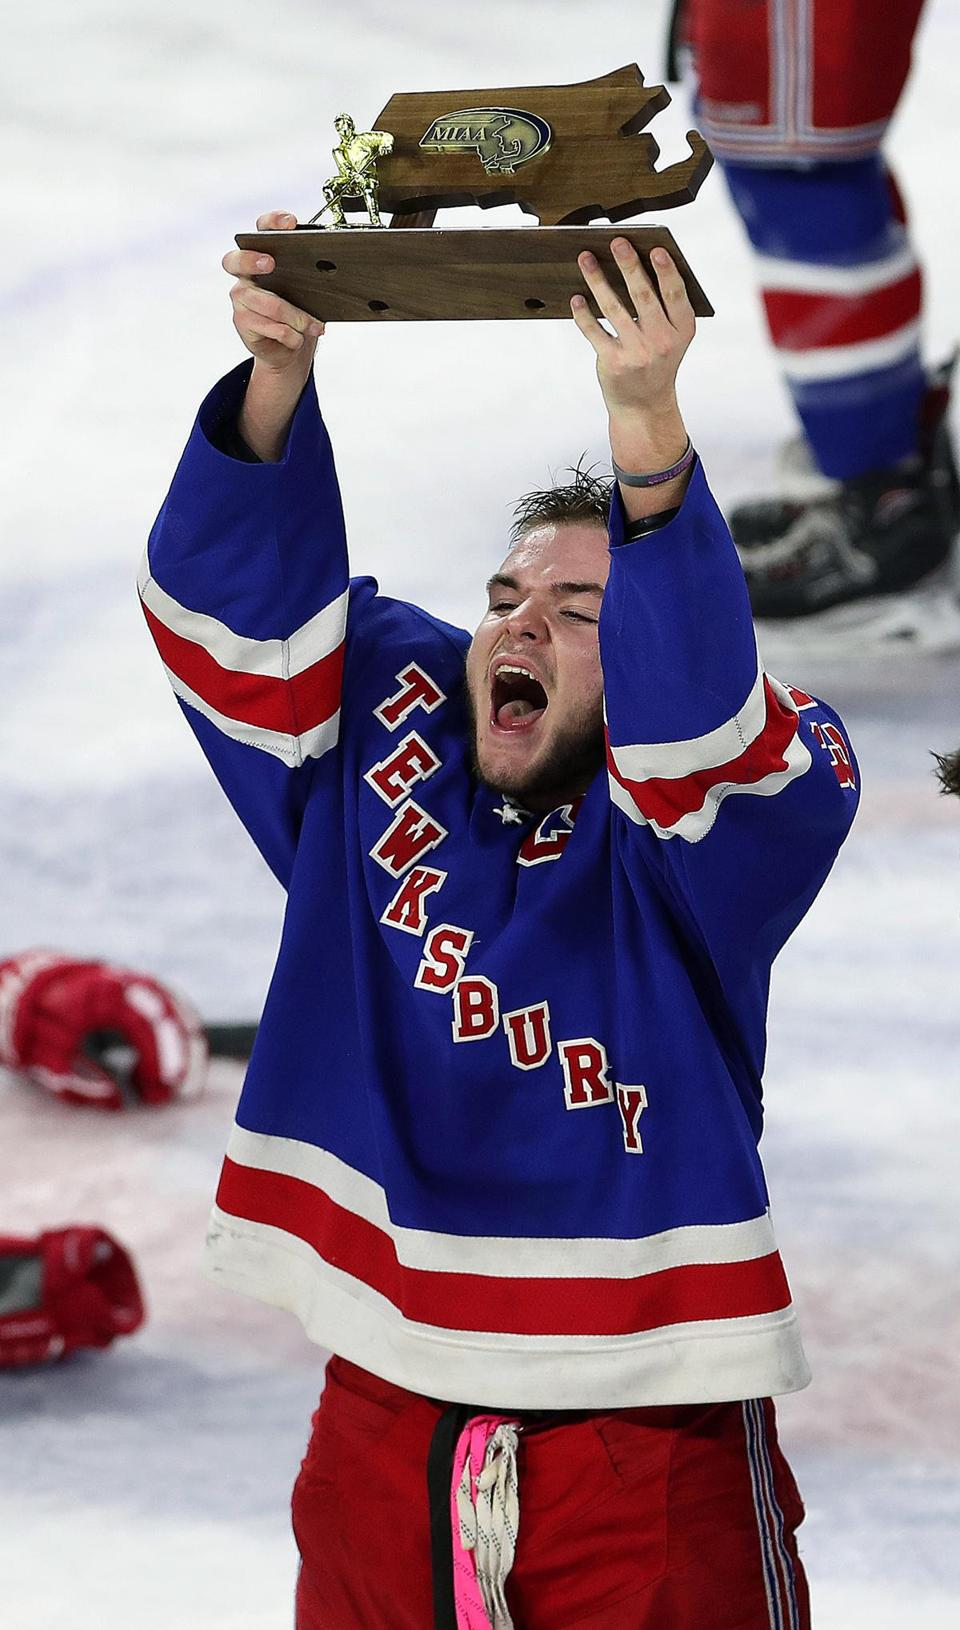 Tewksburycaptain Aaron Scott celebrates by hoisting the MIAA Div. 2 North trophy following his team's victory over Boston Latin, 6-4.